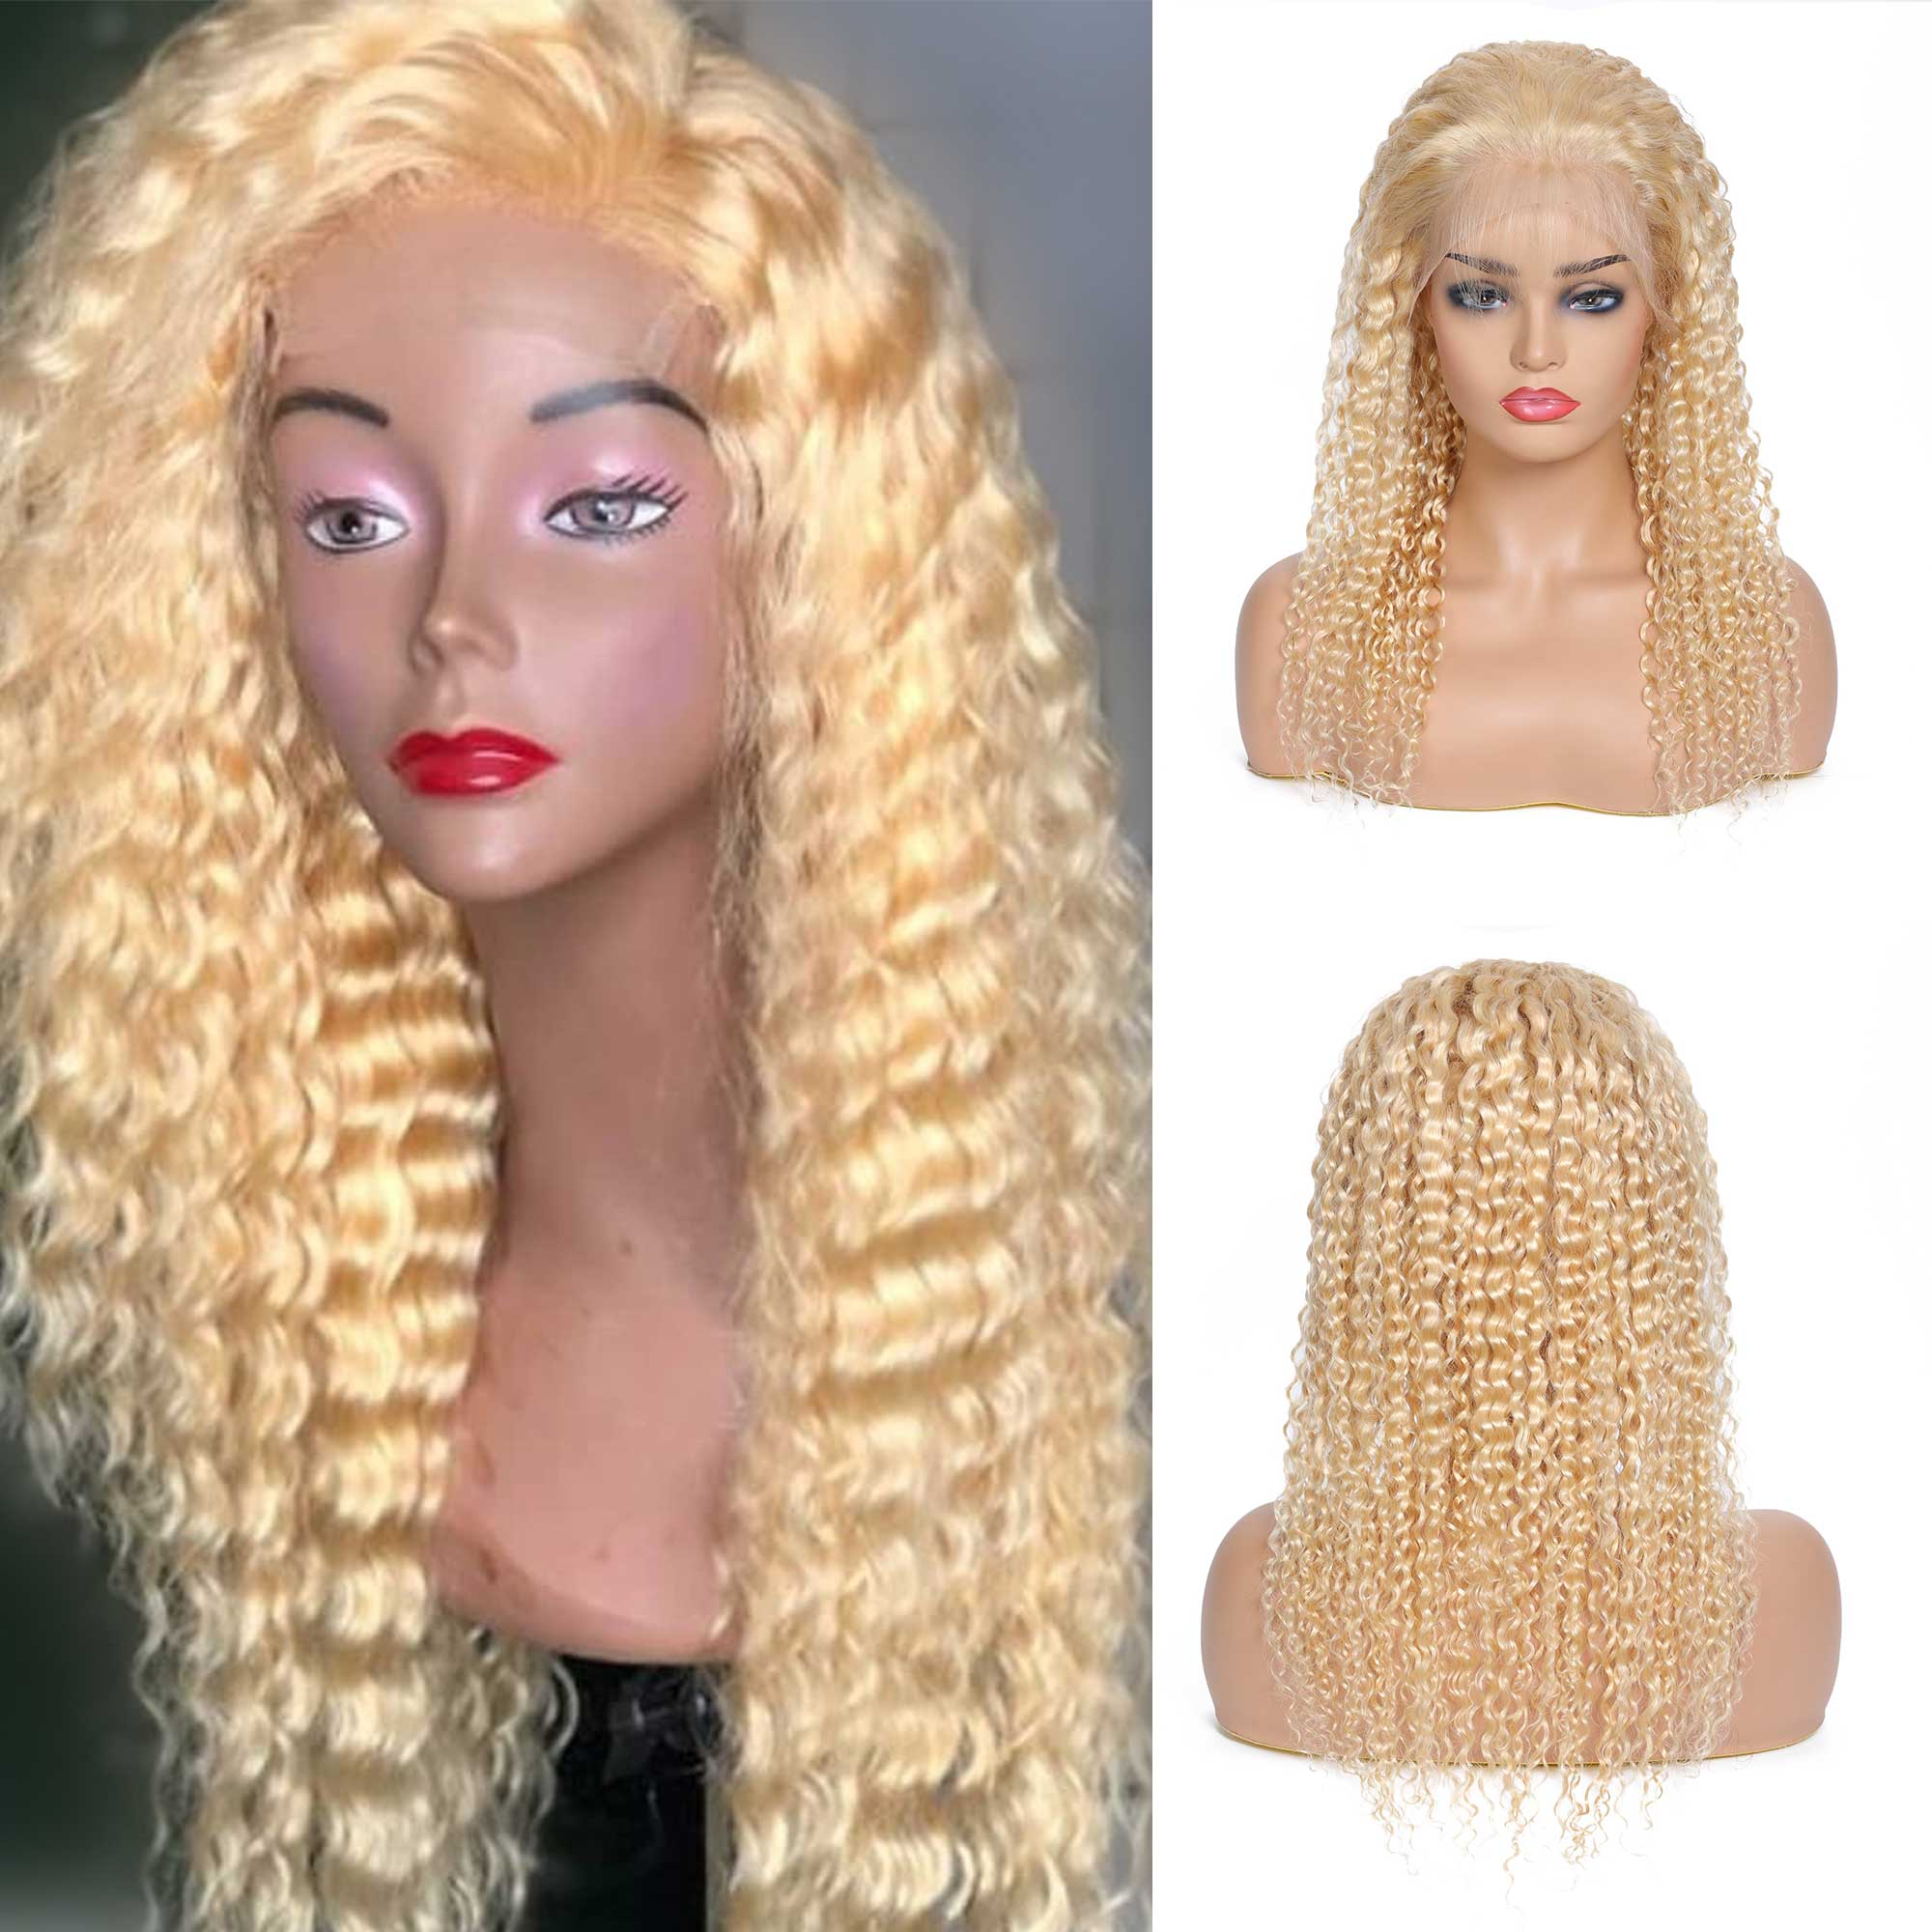 Sunber 613 Blonde Curly Lace Frontal Wigs 10 24 inch Brazilian Long Lace Front Human Remy